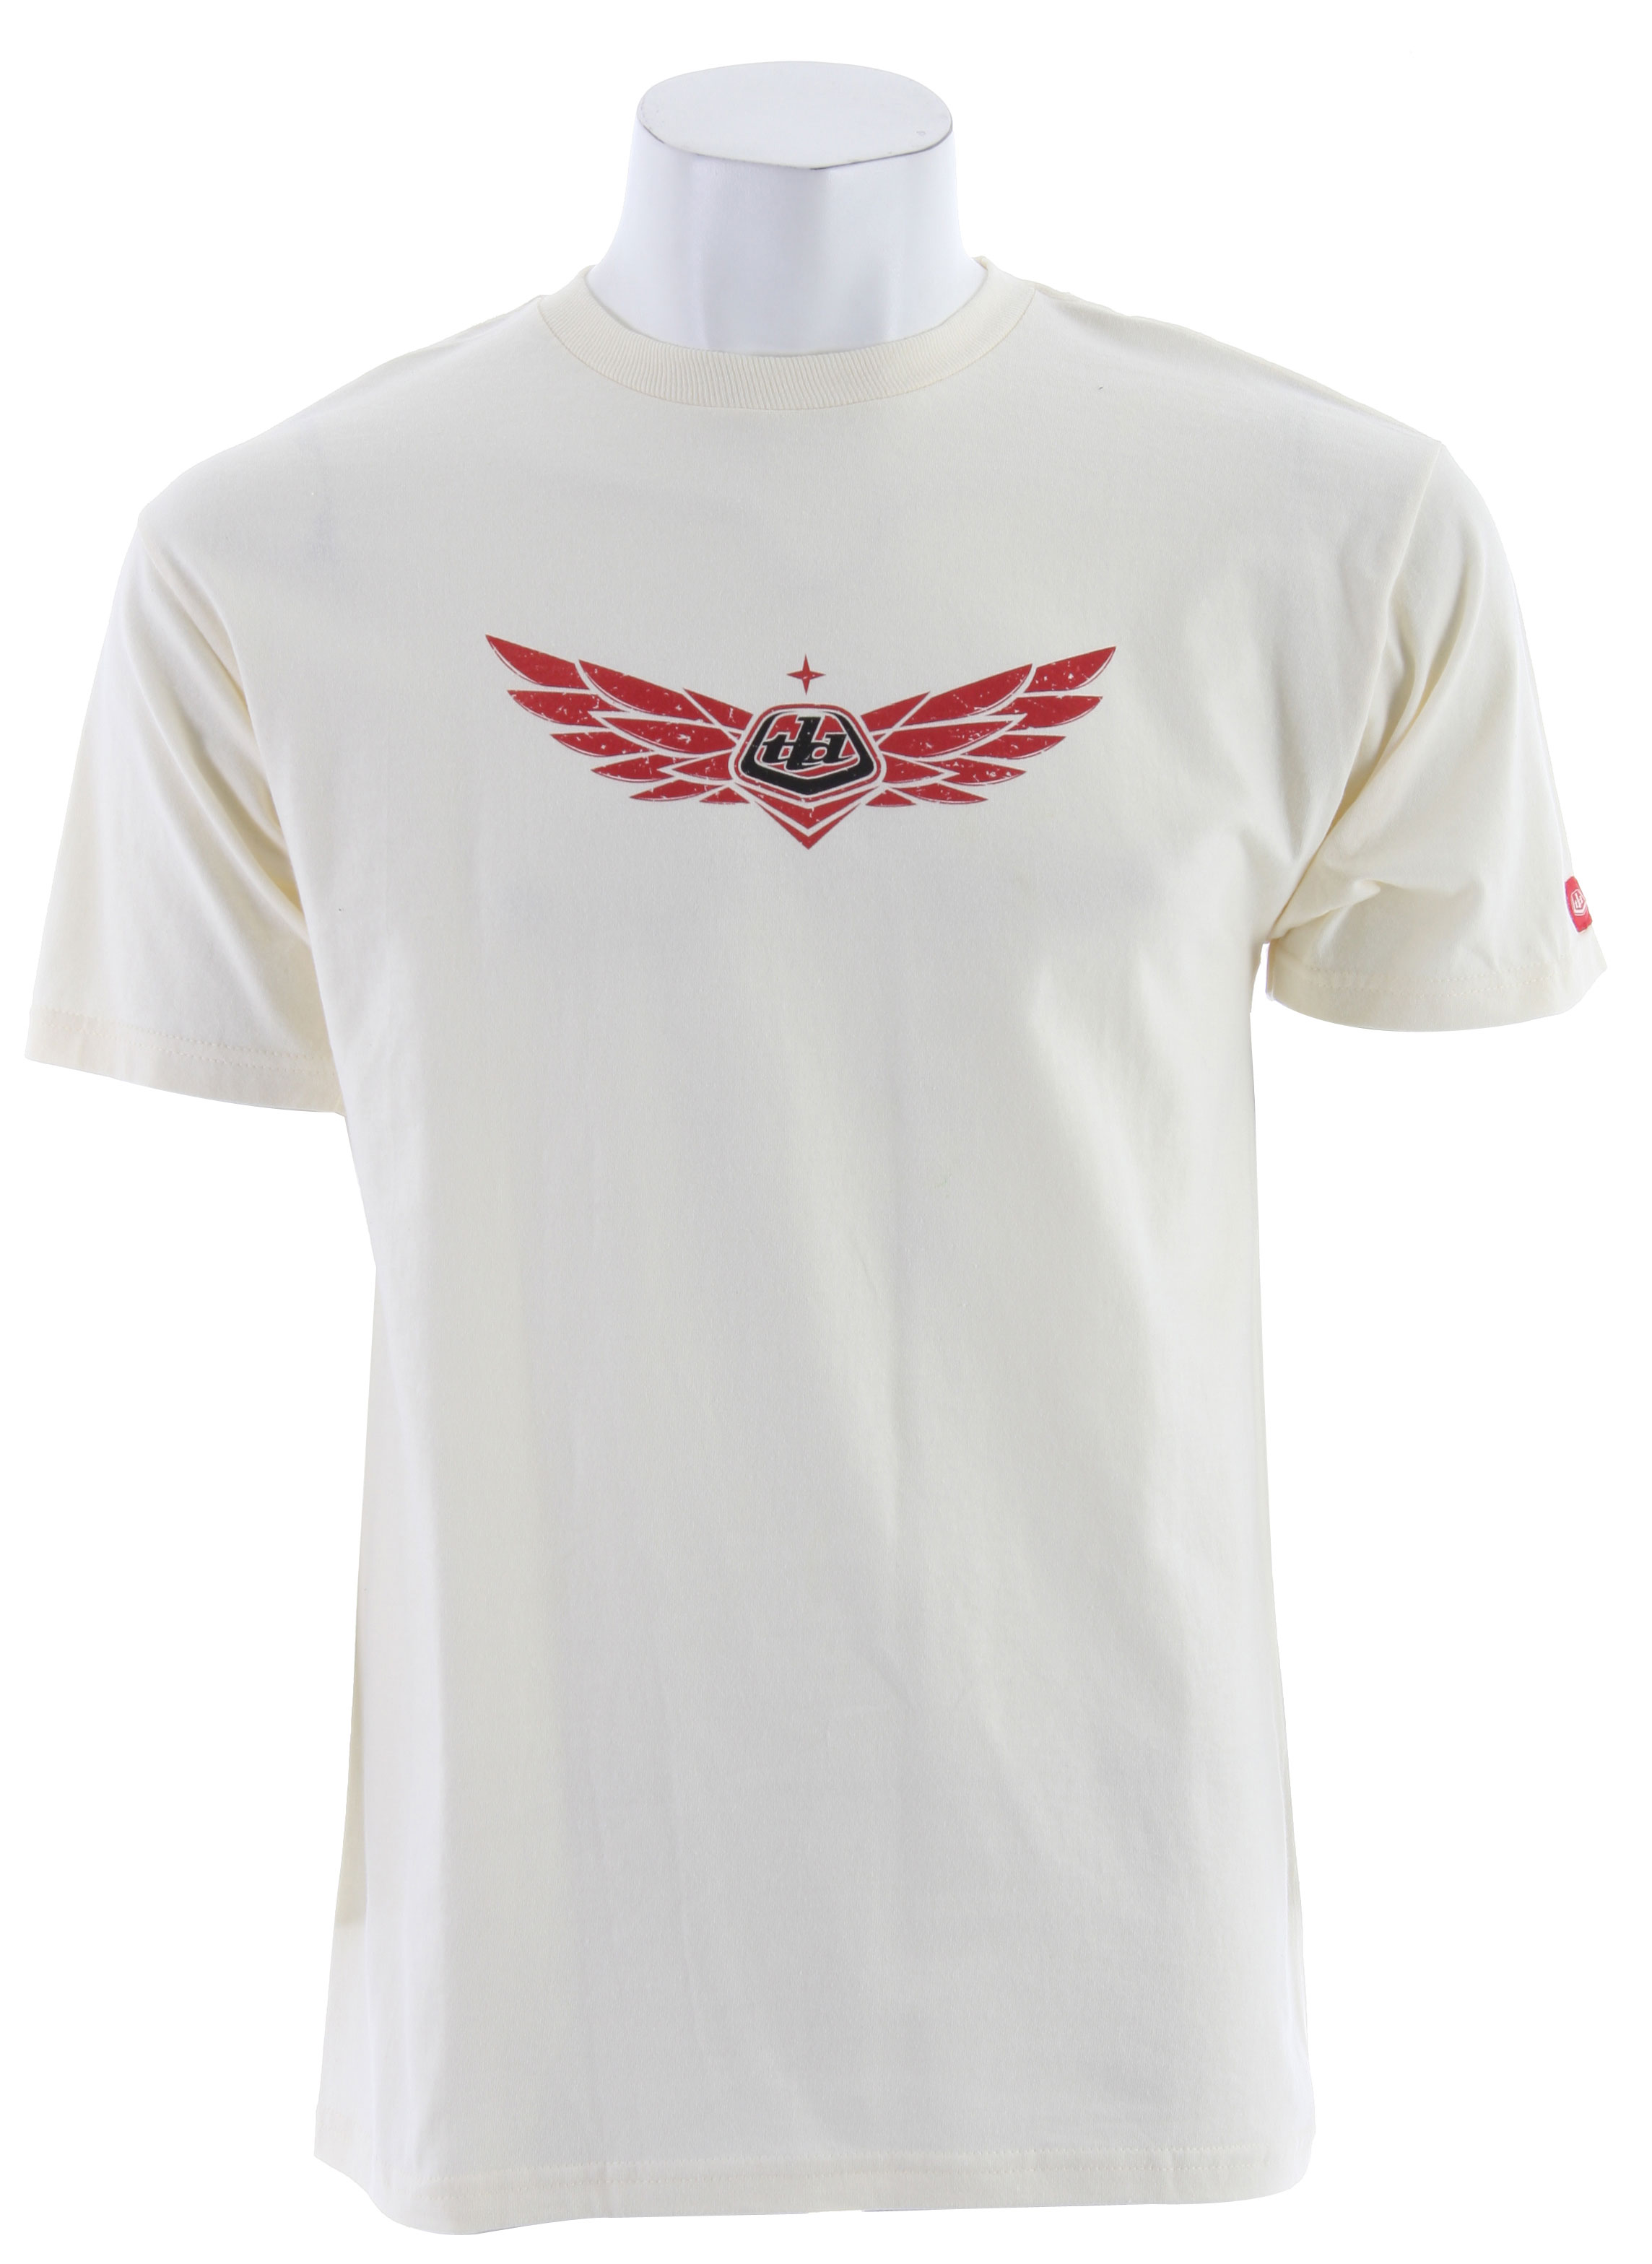 Key Features of The Troy Lee Designs So Cal T-Shirt: Regular Fit Crew Neck Short Sleeve - $6.96